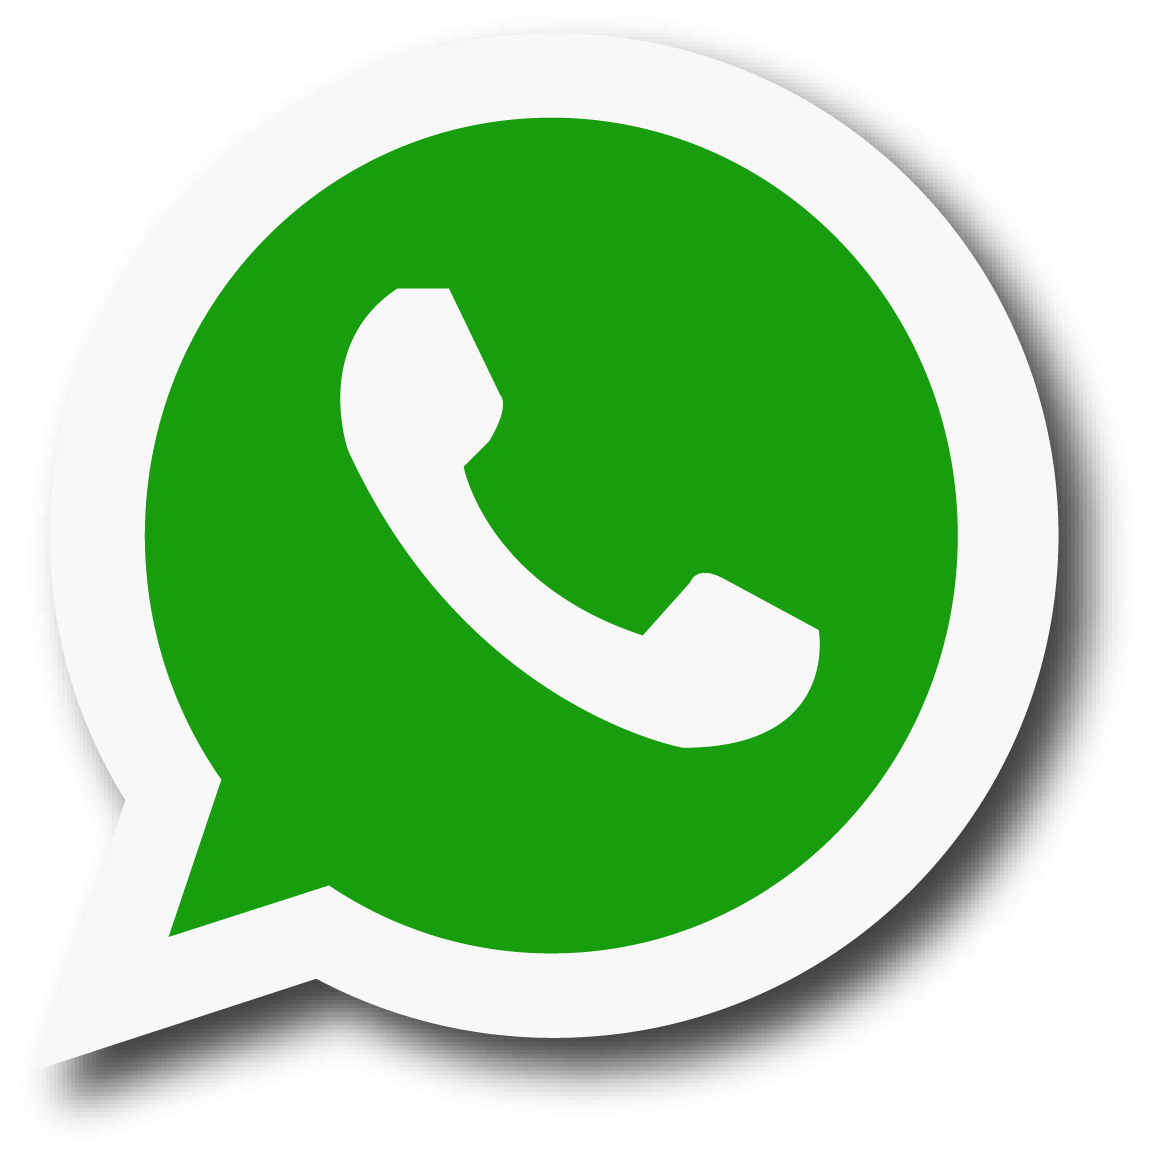 Descargar Messenger Gratis Whatsapp Messenger